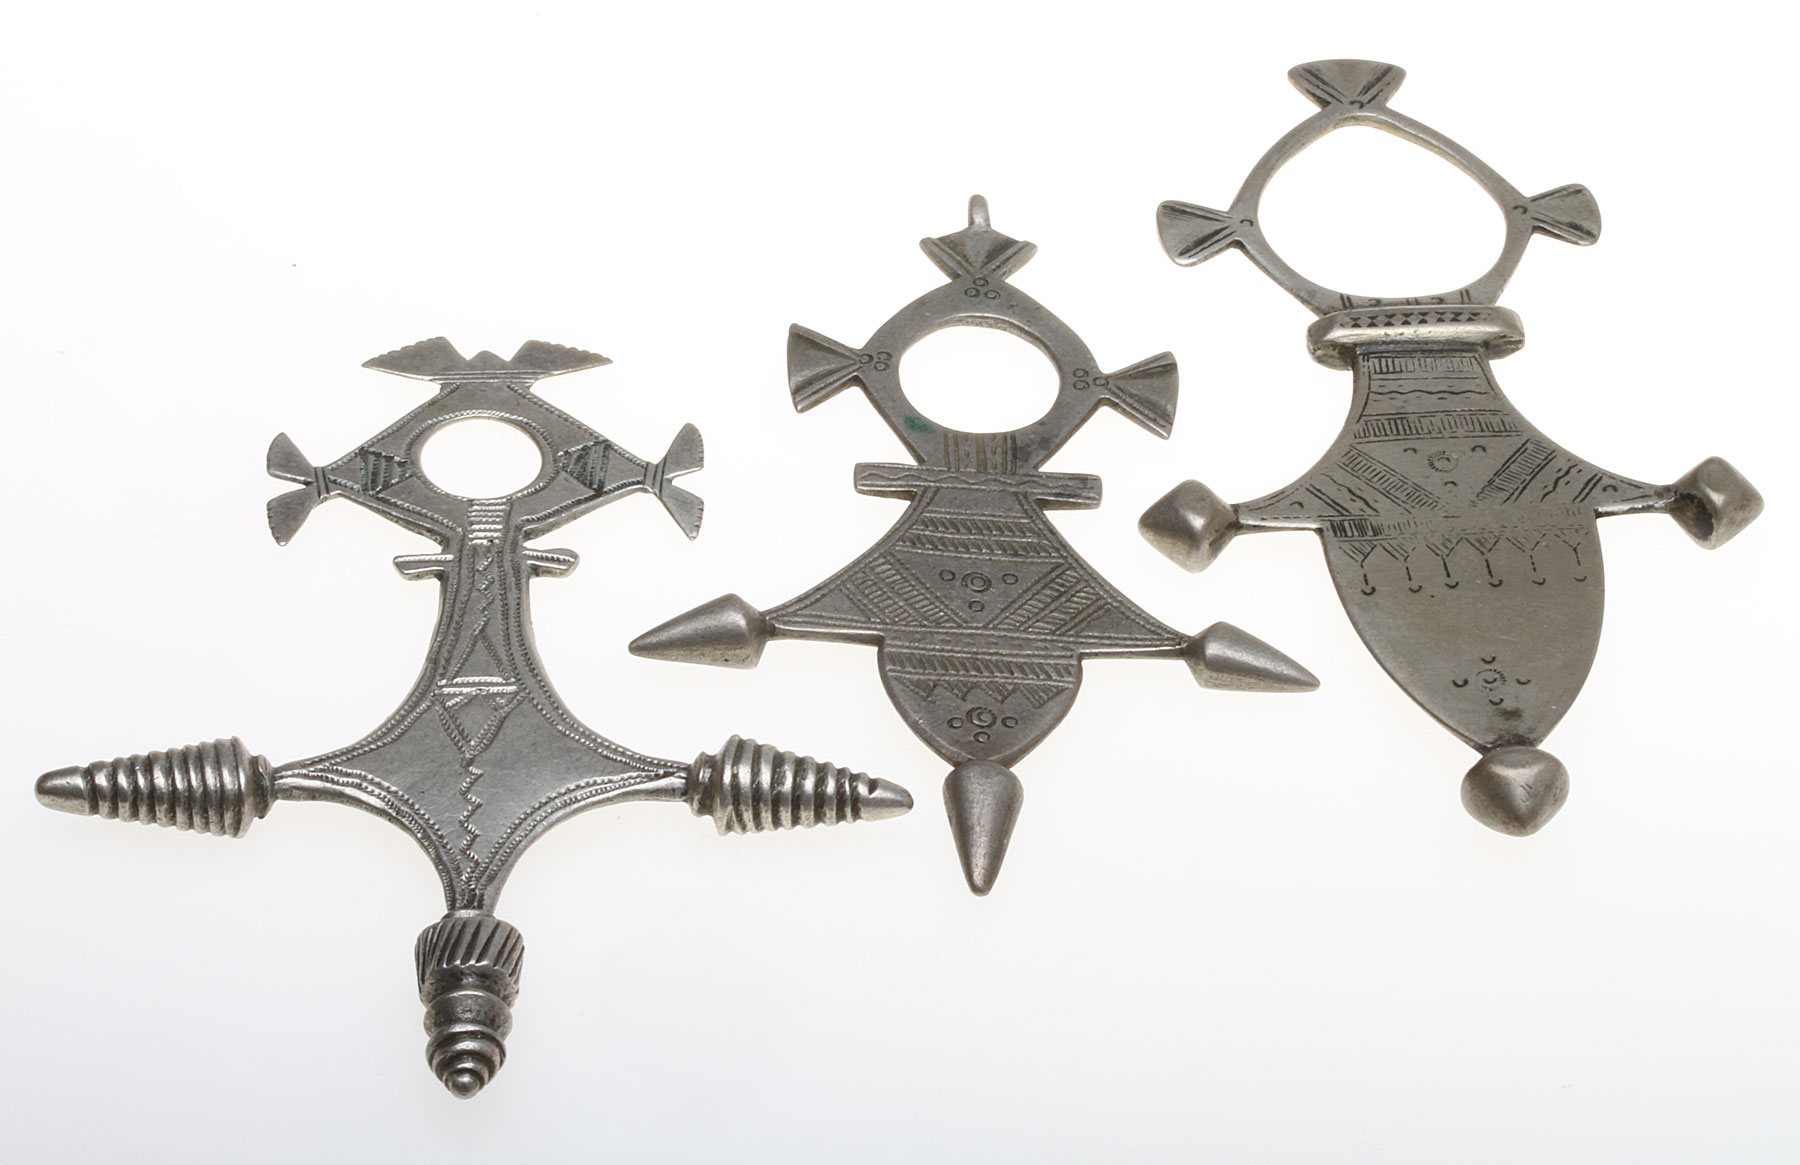 Vintage cast silver crosses of Agadez and Iferwane, that have been tooled, primarily with chasing; they are 7.0 to 8.4 cm high. For additional information, see Ornament 40/3, 2018.  Courtesy of J. Busch.  RKL